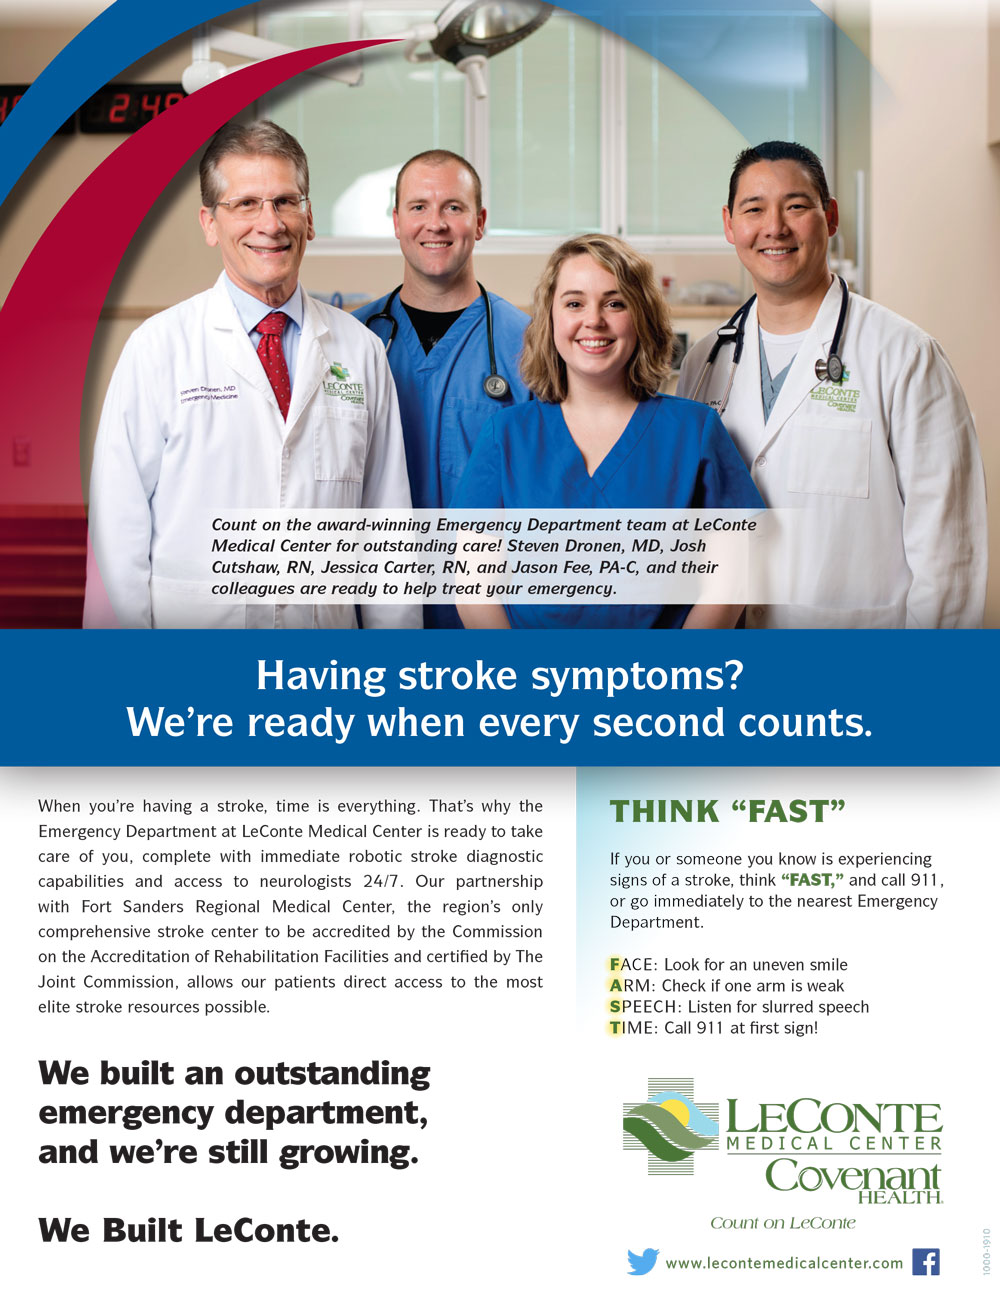 We Built LeConte Emergency Department ad